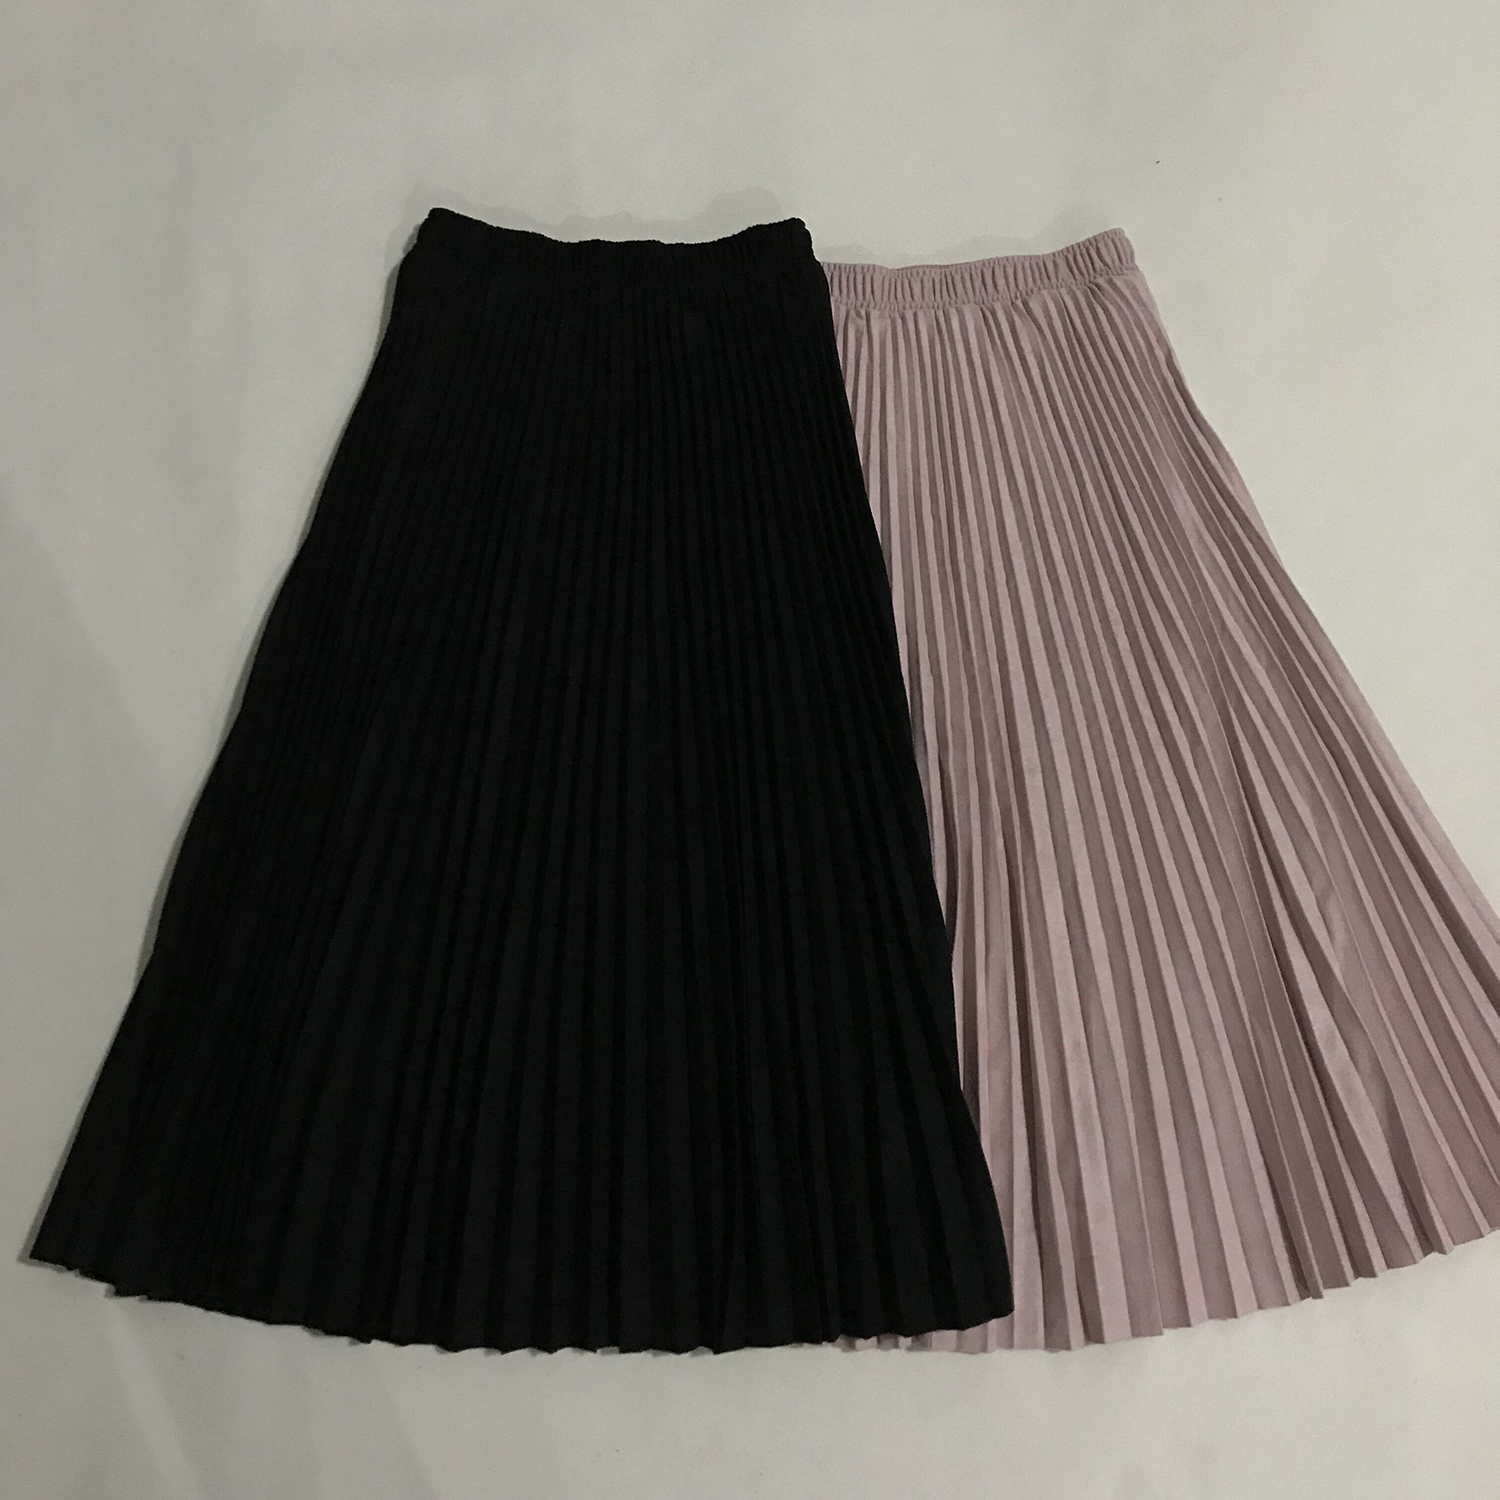 19 Two Layer Autumn Winter Women Suede Skirt Long Pleated Skirts Womens Saias Midi Faldas Vintage Women Midi Skirt 39